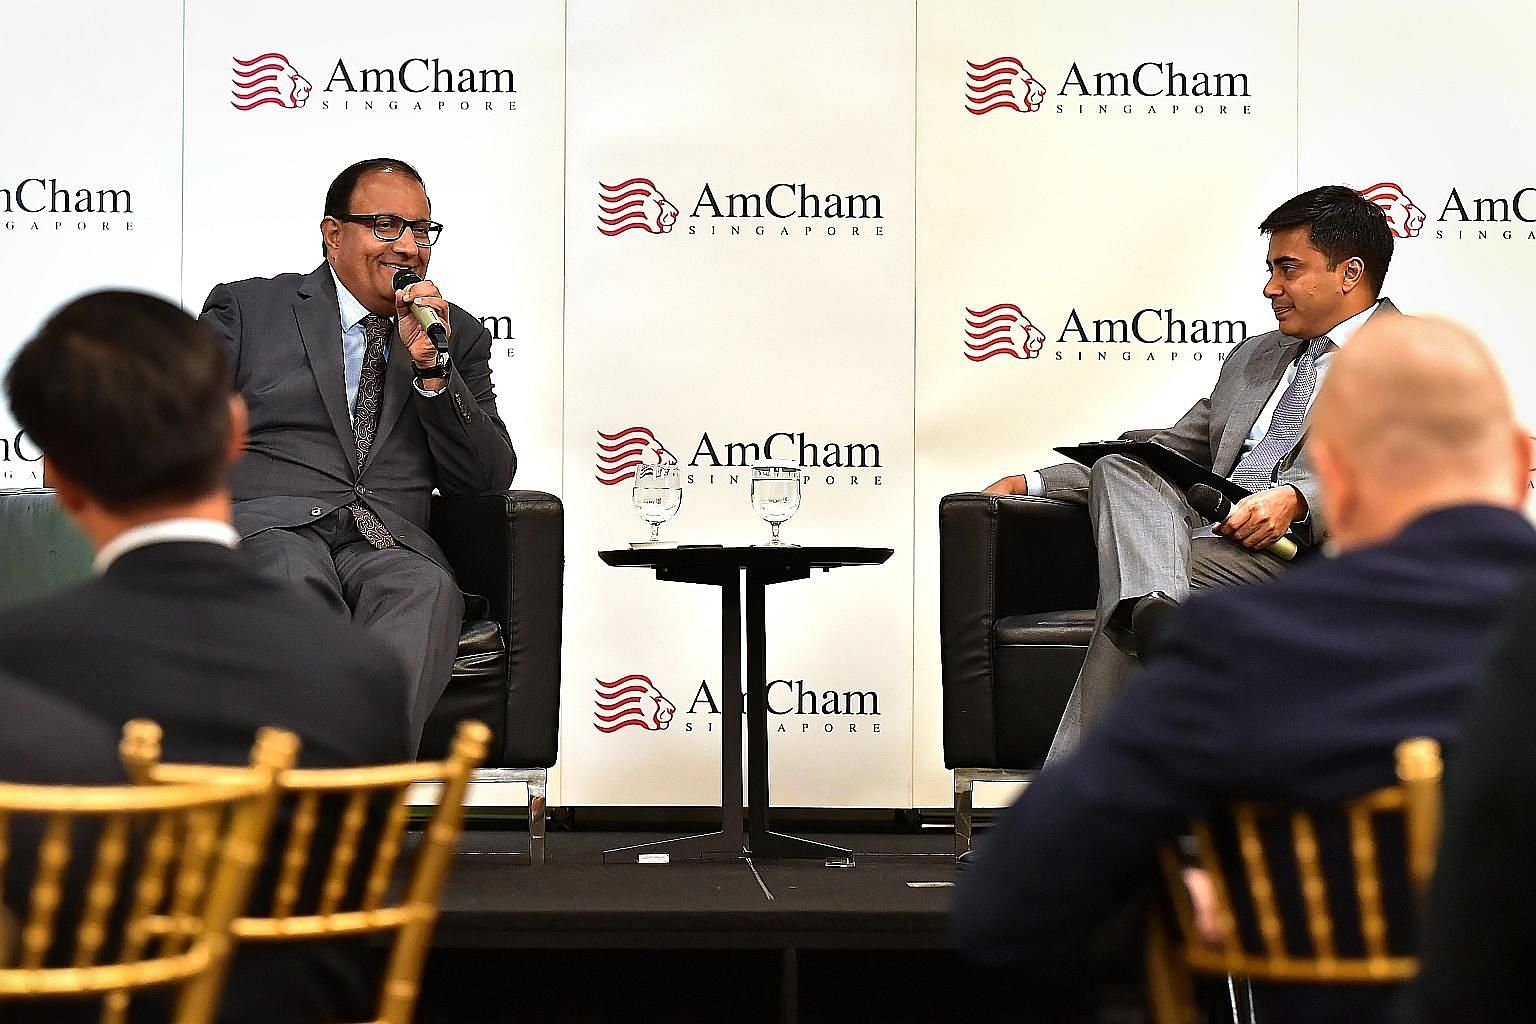 Mr S. Iswaran (far left), with dialogue moderator Kunal Chatterjee, Visa's country manager for Singapore and Brunei, speaking at the American Chamber of Commerce luncheon yesterday. ST PHOTO: NG SOR LUAN